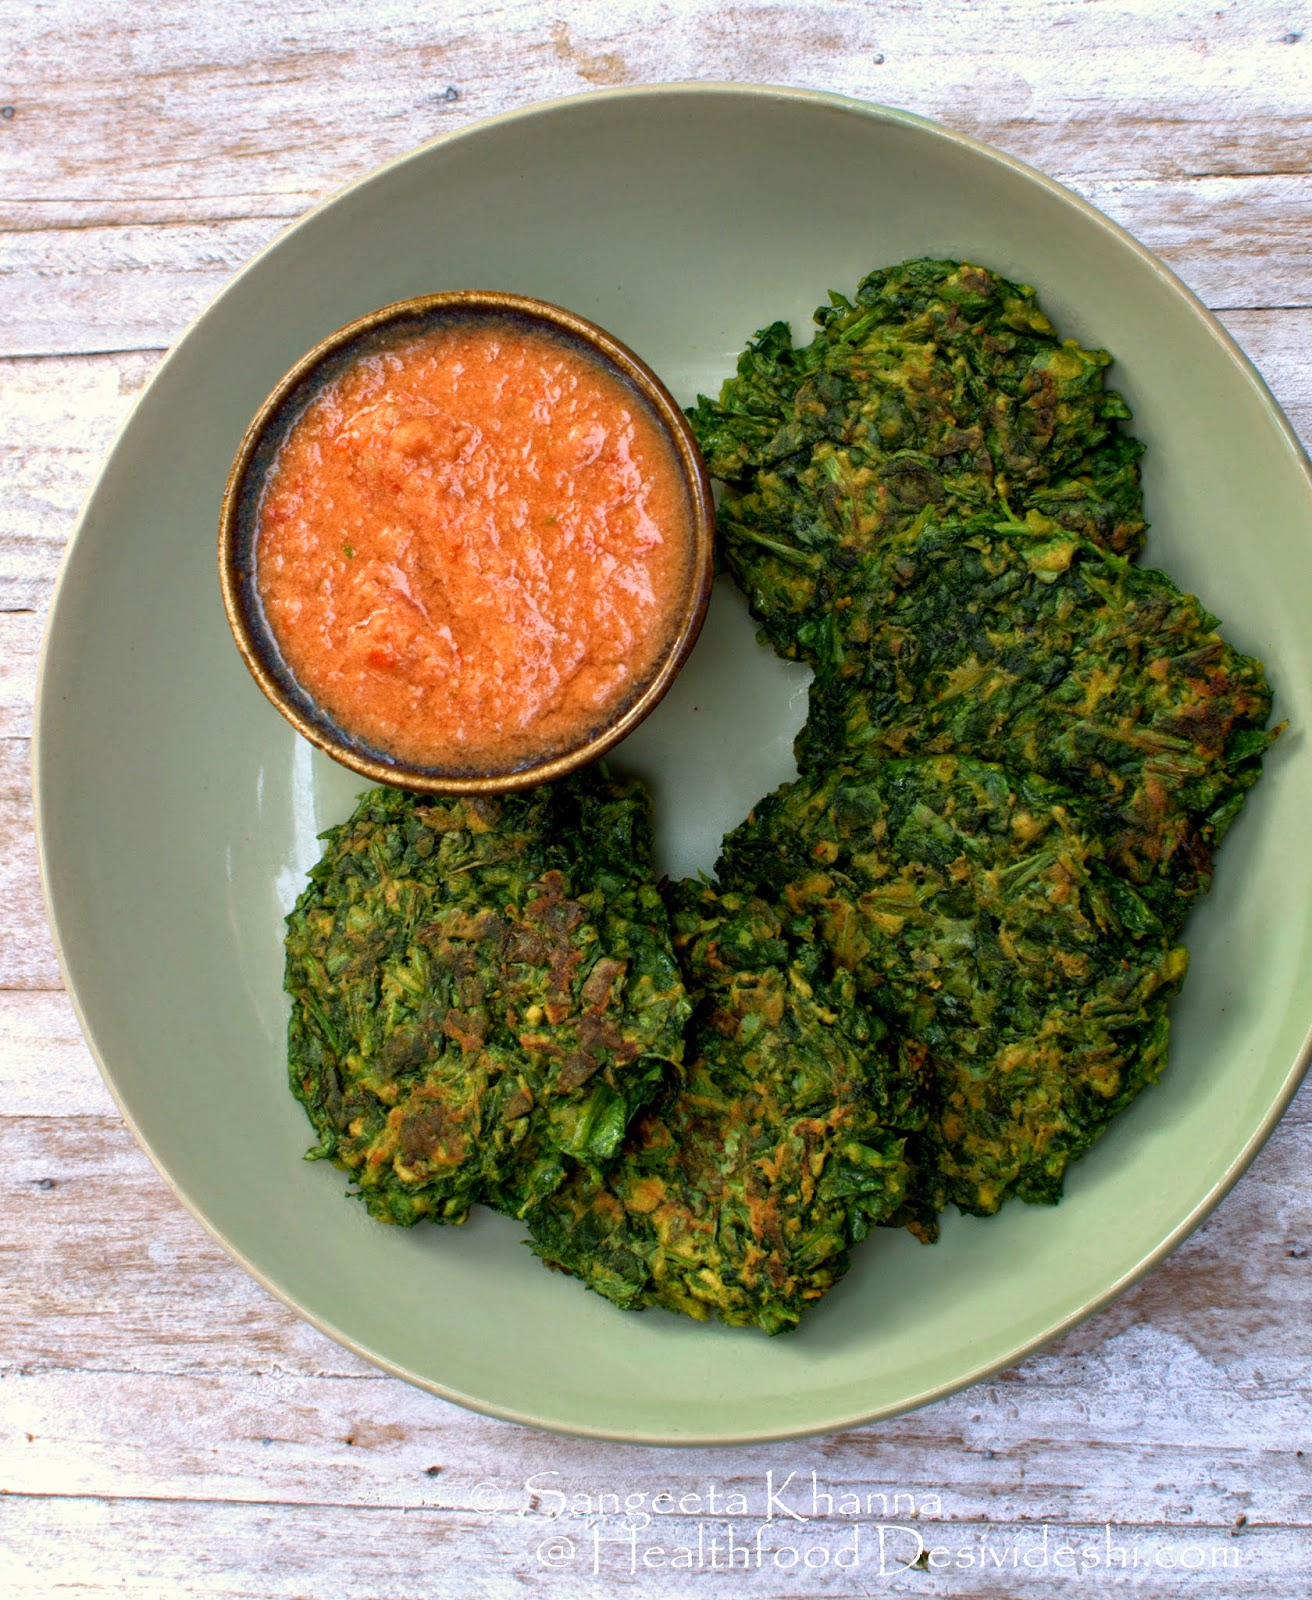 101 gluten free breakfasts : lentil fritters with home grown greens #calorieefficientmeals